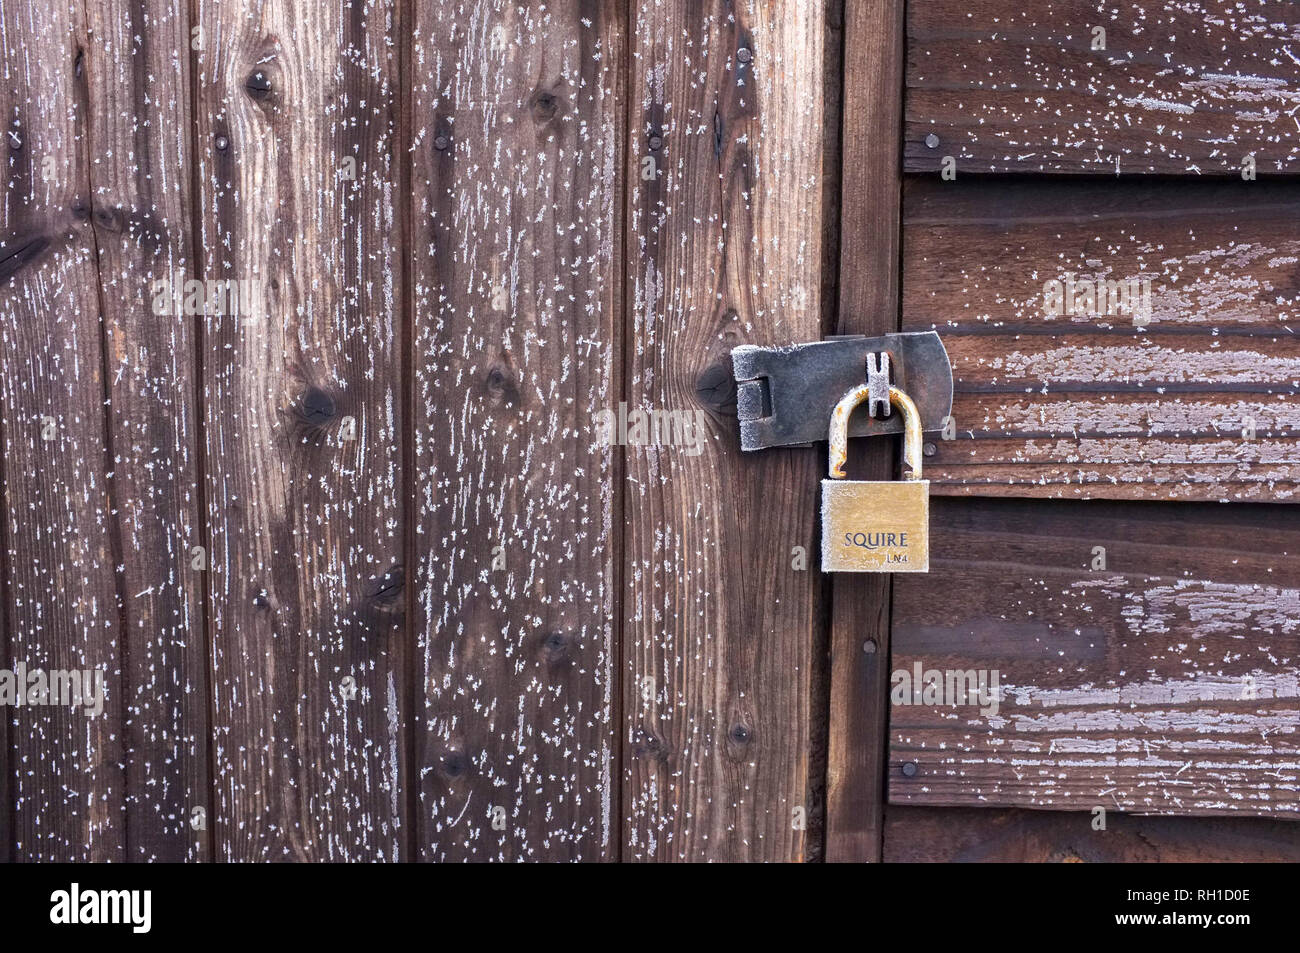 Light frost shows grain on timber shed with latch and padlock. England 2019. - Stock Image